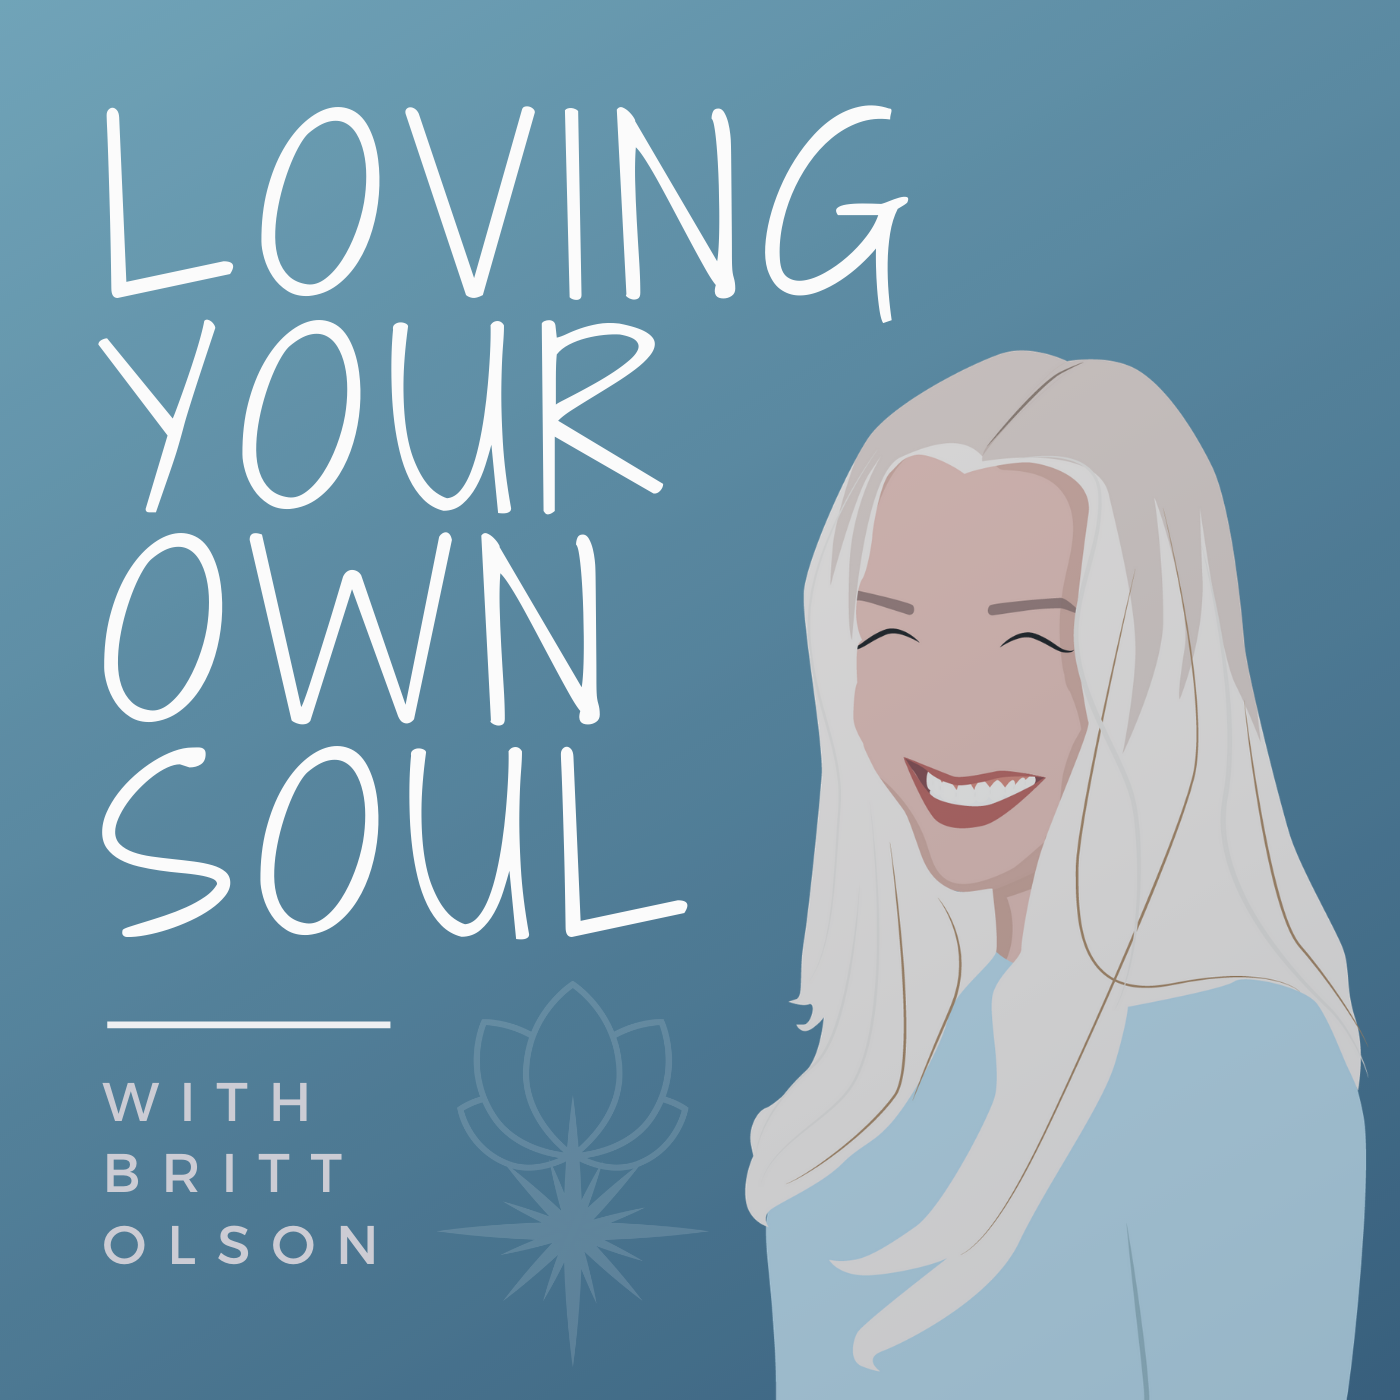 Introducing The Loving Your Own Soul Platform